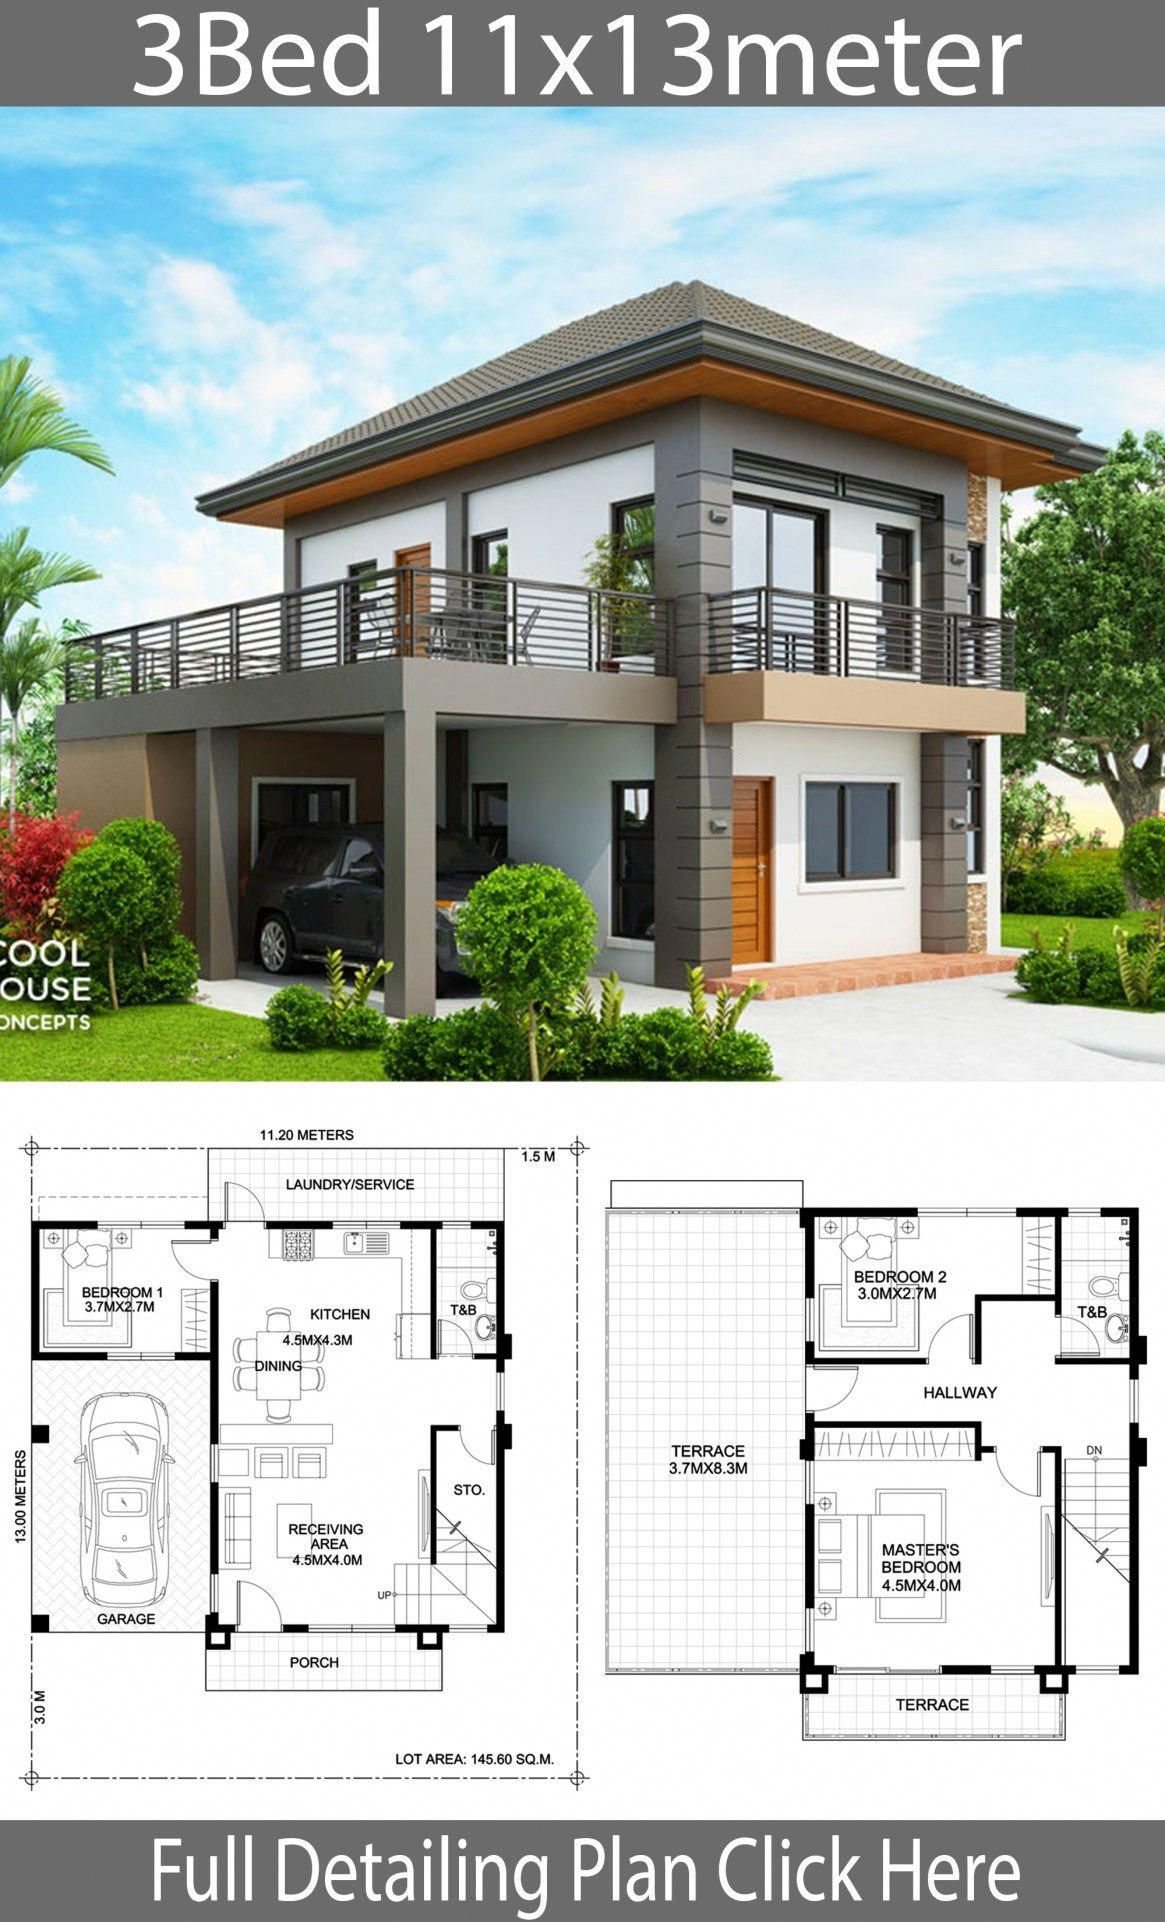 Home Design Plan 11x13m With 3 Bedrooms Home Design With Plansearch Homedesign In 2020 2 Storey House Design House Construction Plan Small House Design Plans